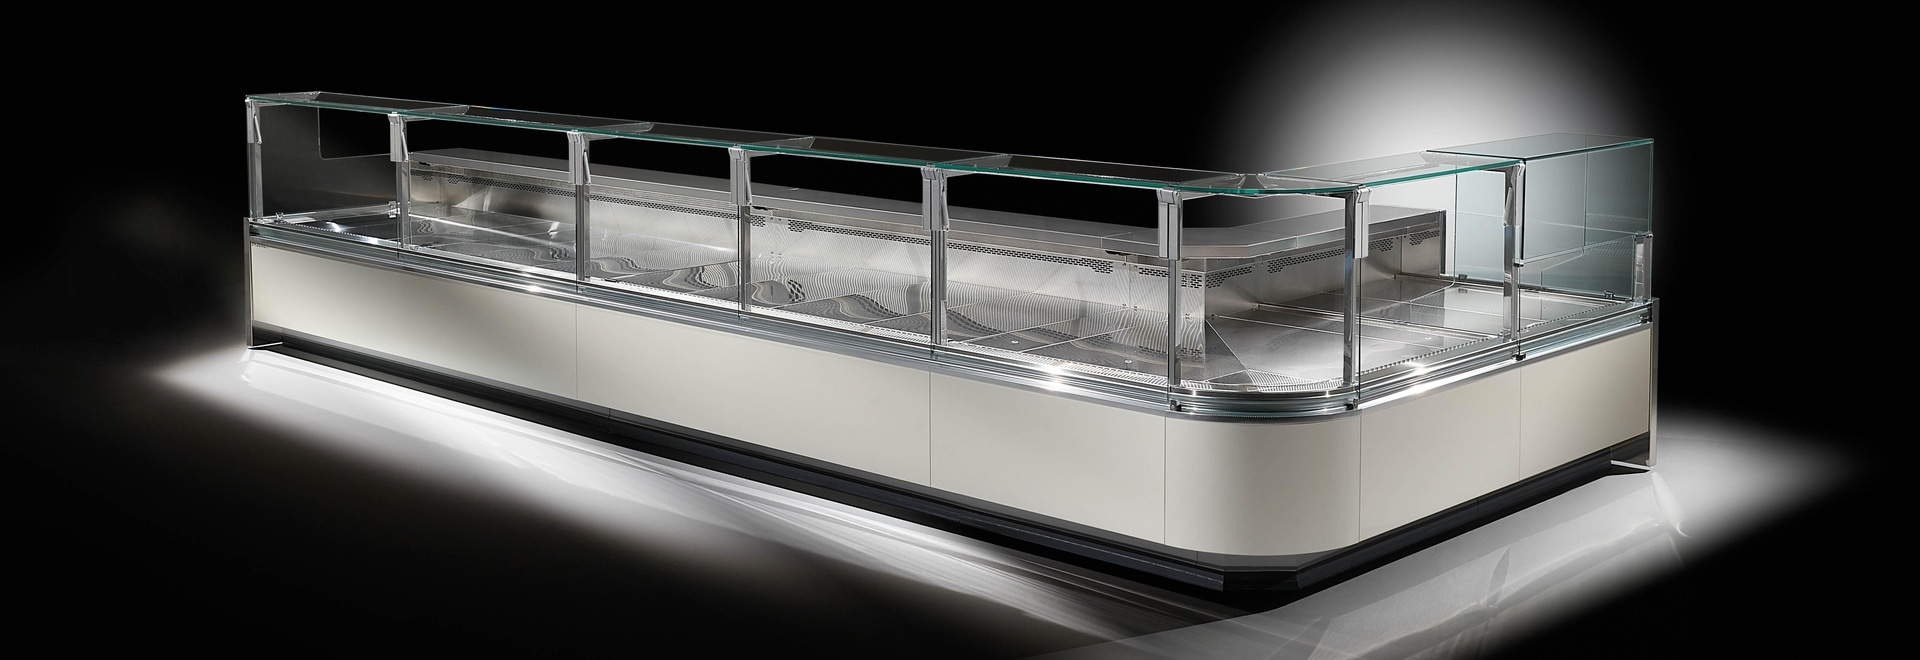 NEW ENIXE REFRIGERATED DISPLAY COUNTER